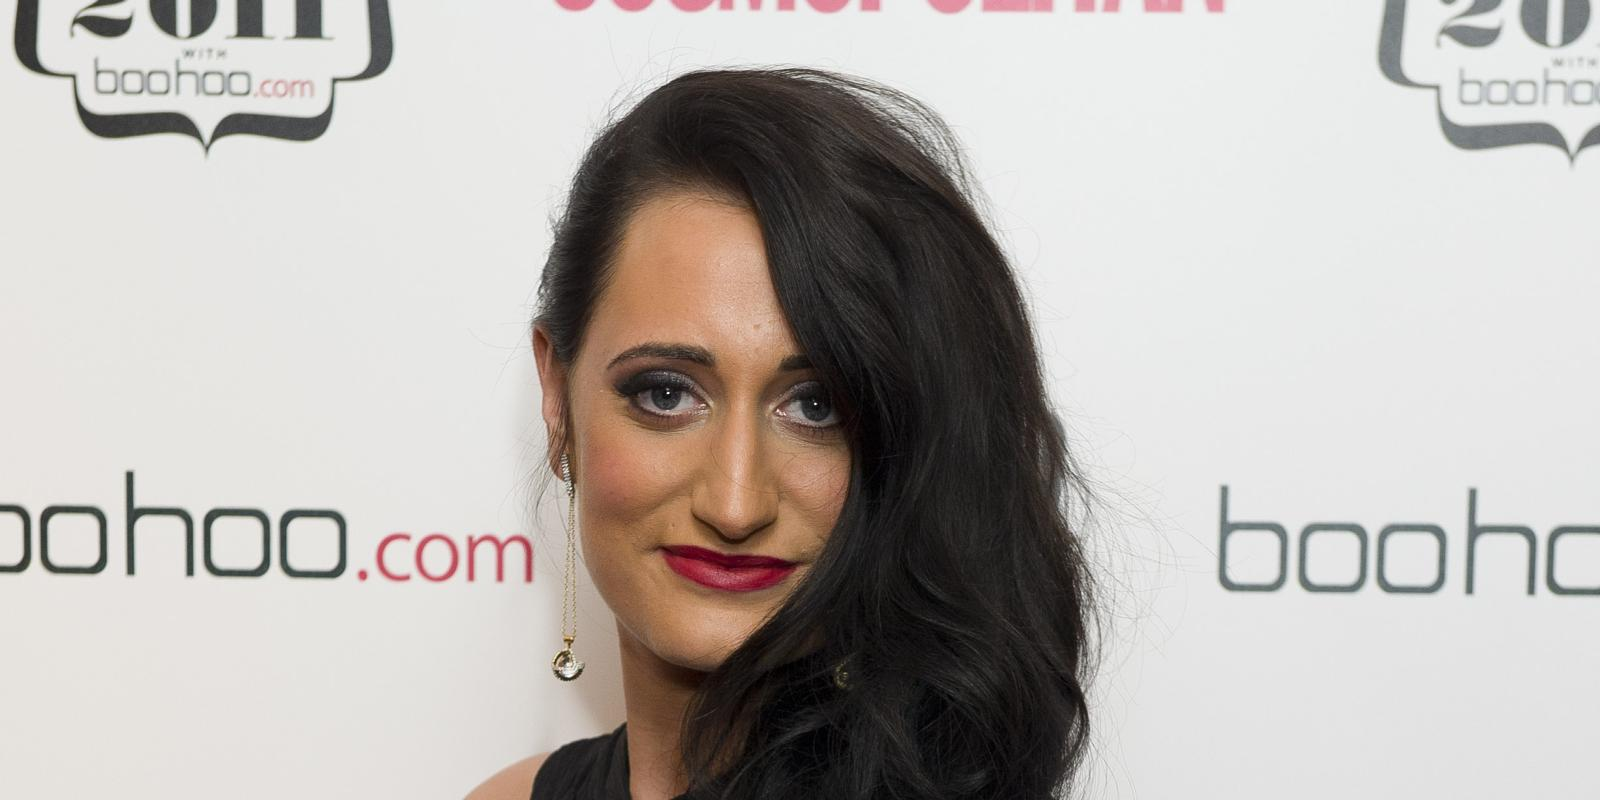 Lauren Socha naked (31 foto and video), Tits, Sideboobs, Feet, butt 2020